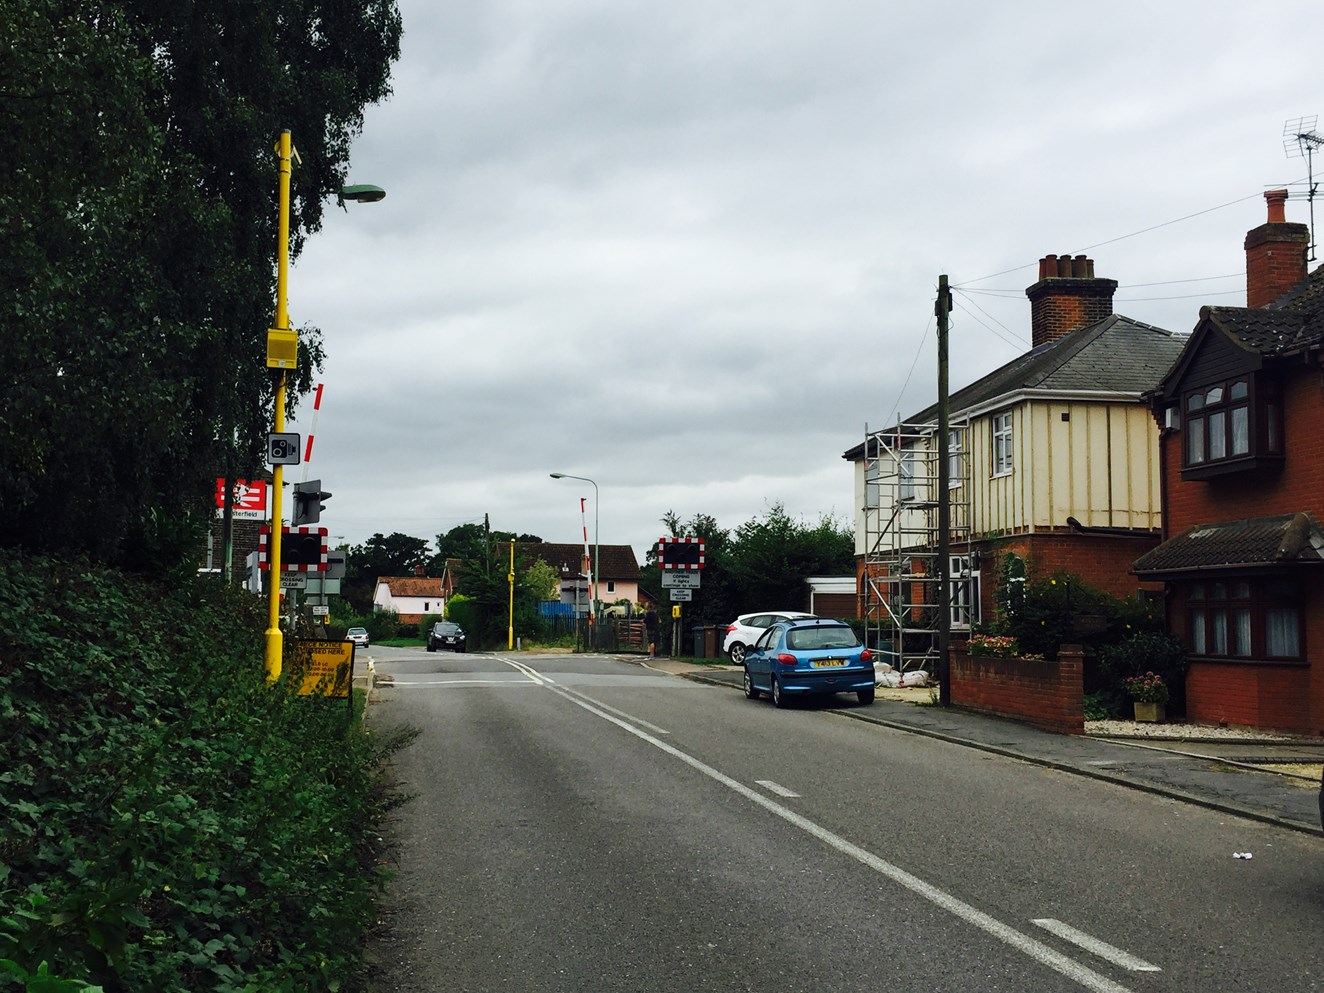 Dangerous driving at level crossings in Suffolk more than halved following installation of safety cameras: Westerfield level crossing RLSE-2